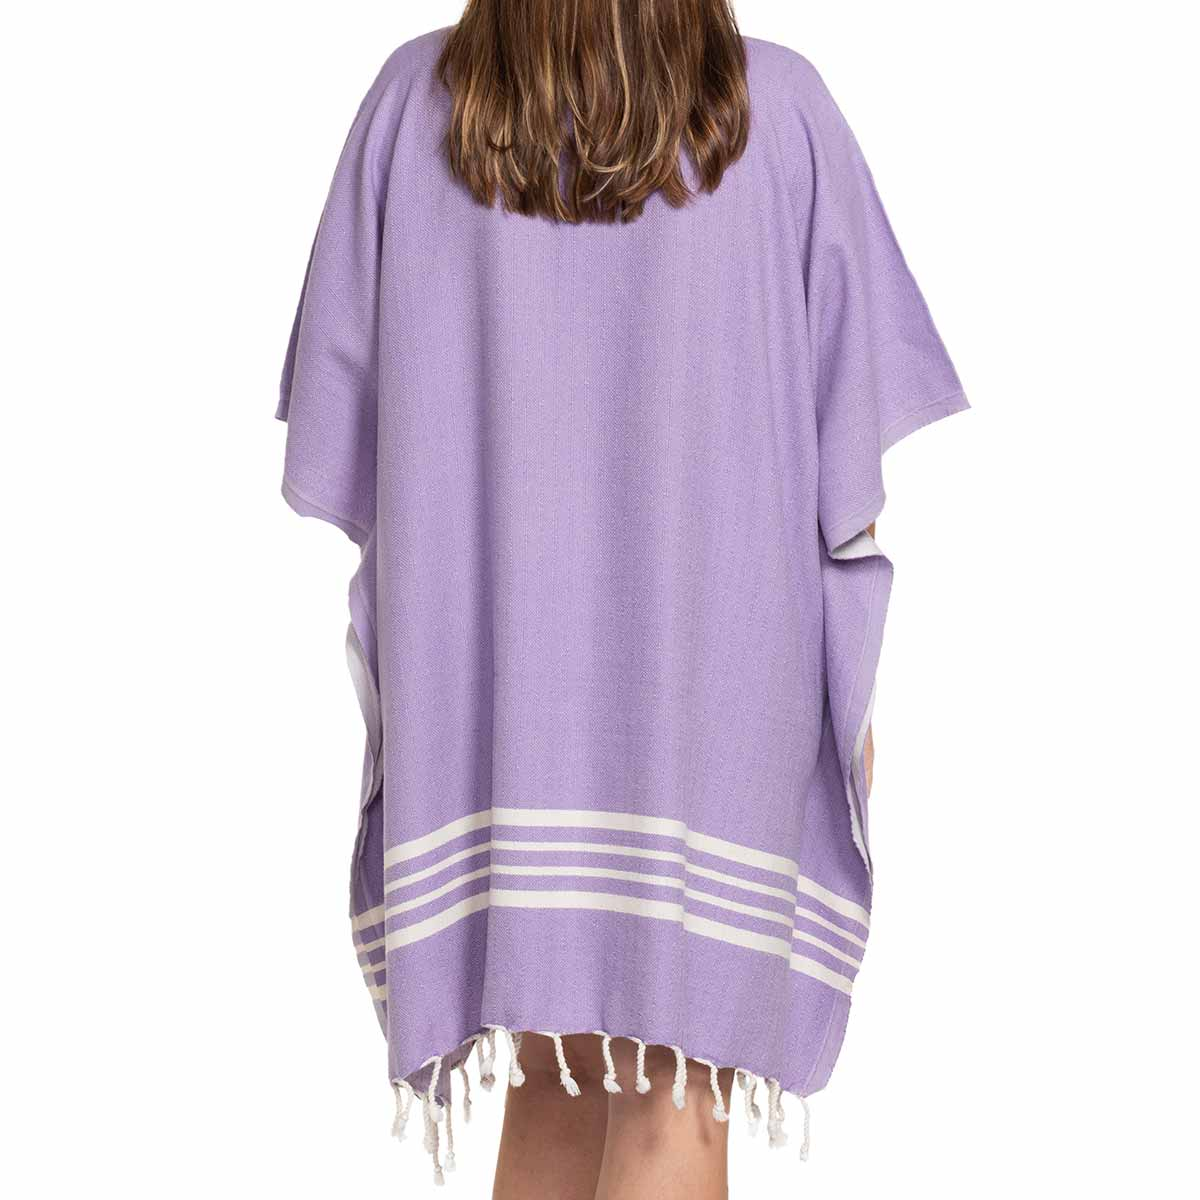 Tunic Sultan - Dark Lilac